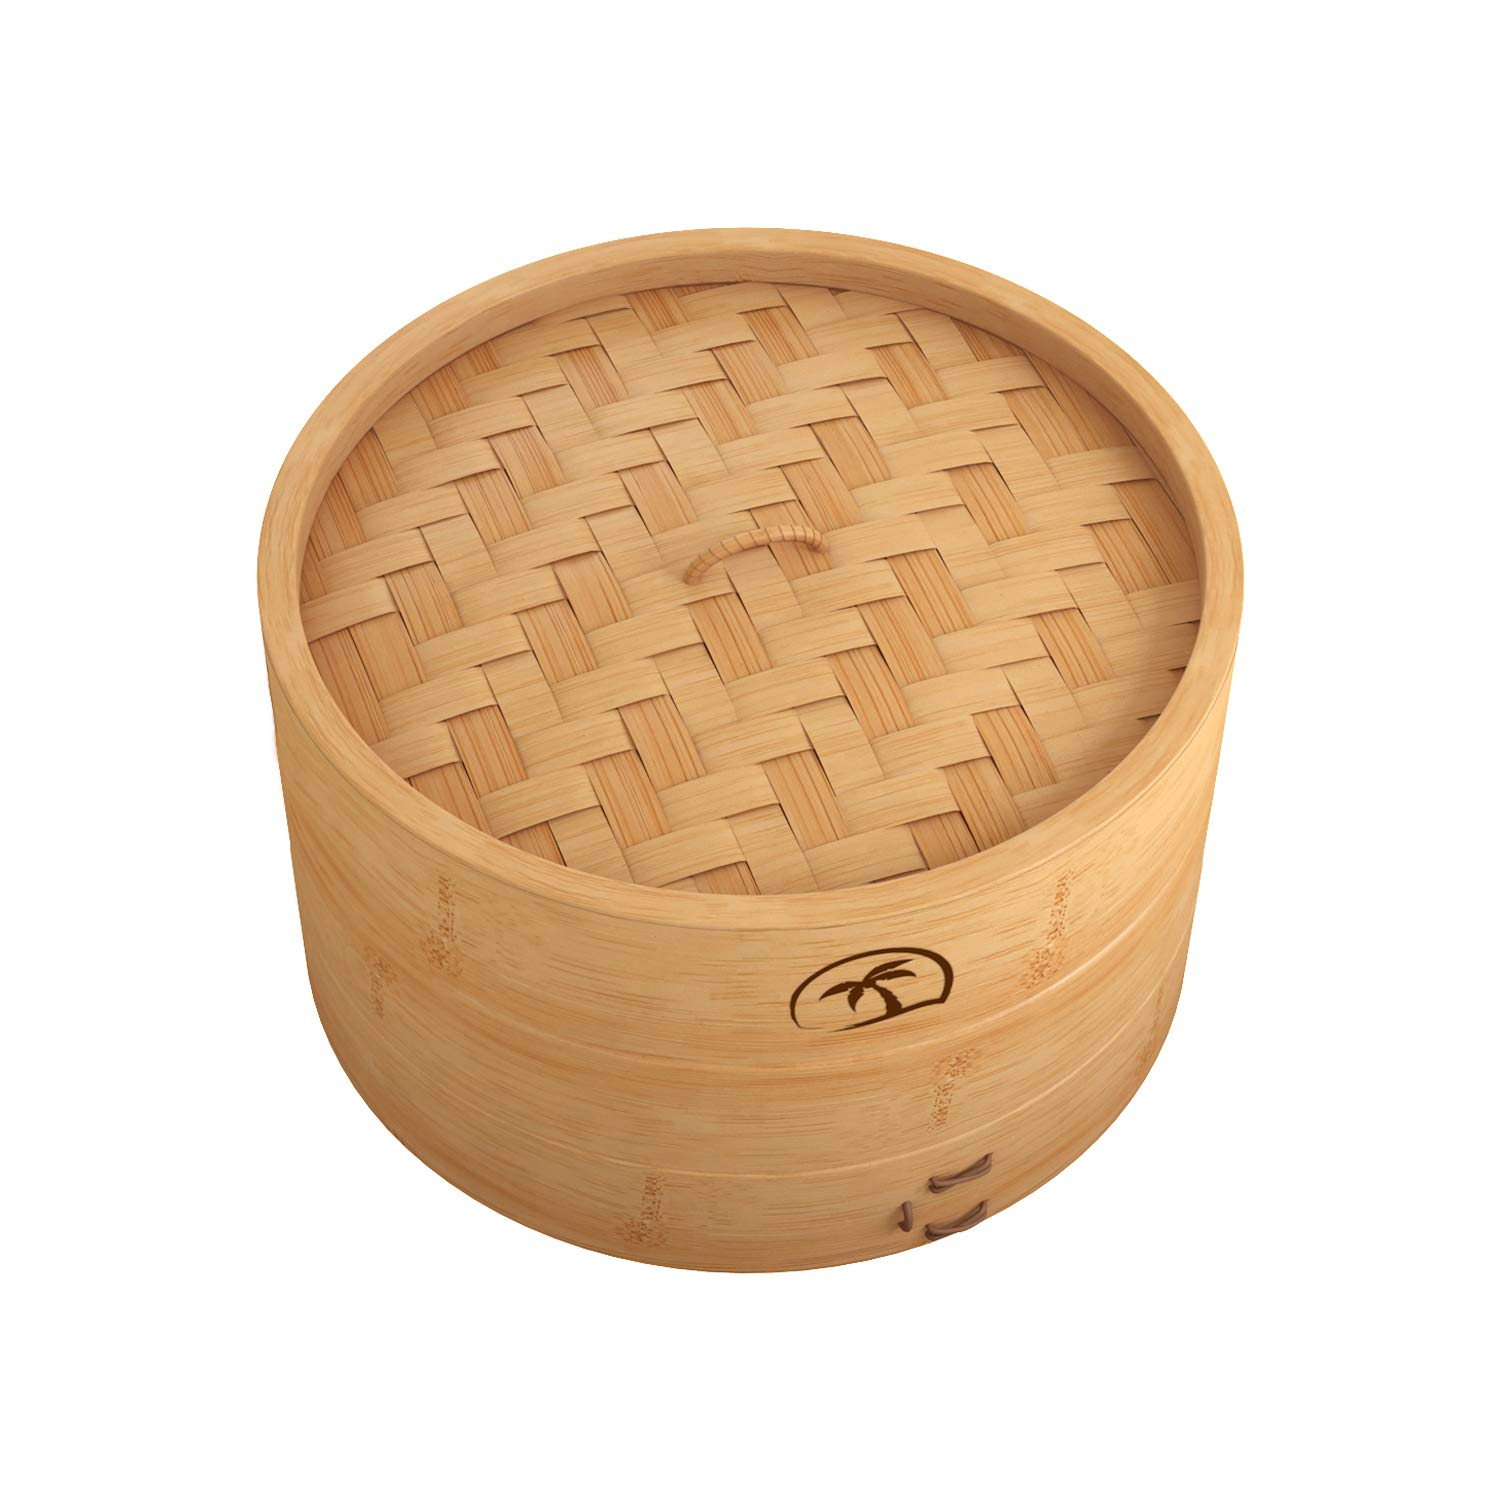 """10"""" Natural Bamboo Dumpling Steamer 2 Tiers Basket with Lid Includes 50 Wax Papers, 2 Pair of Chopsticks & Instruction Manual - Great for Asian Cooking by Tree Top"""